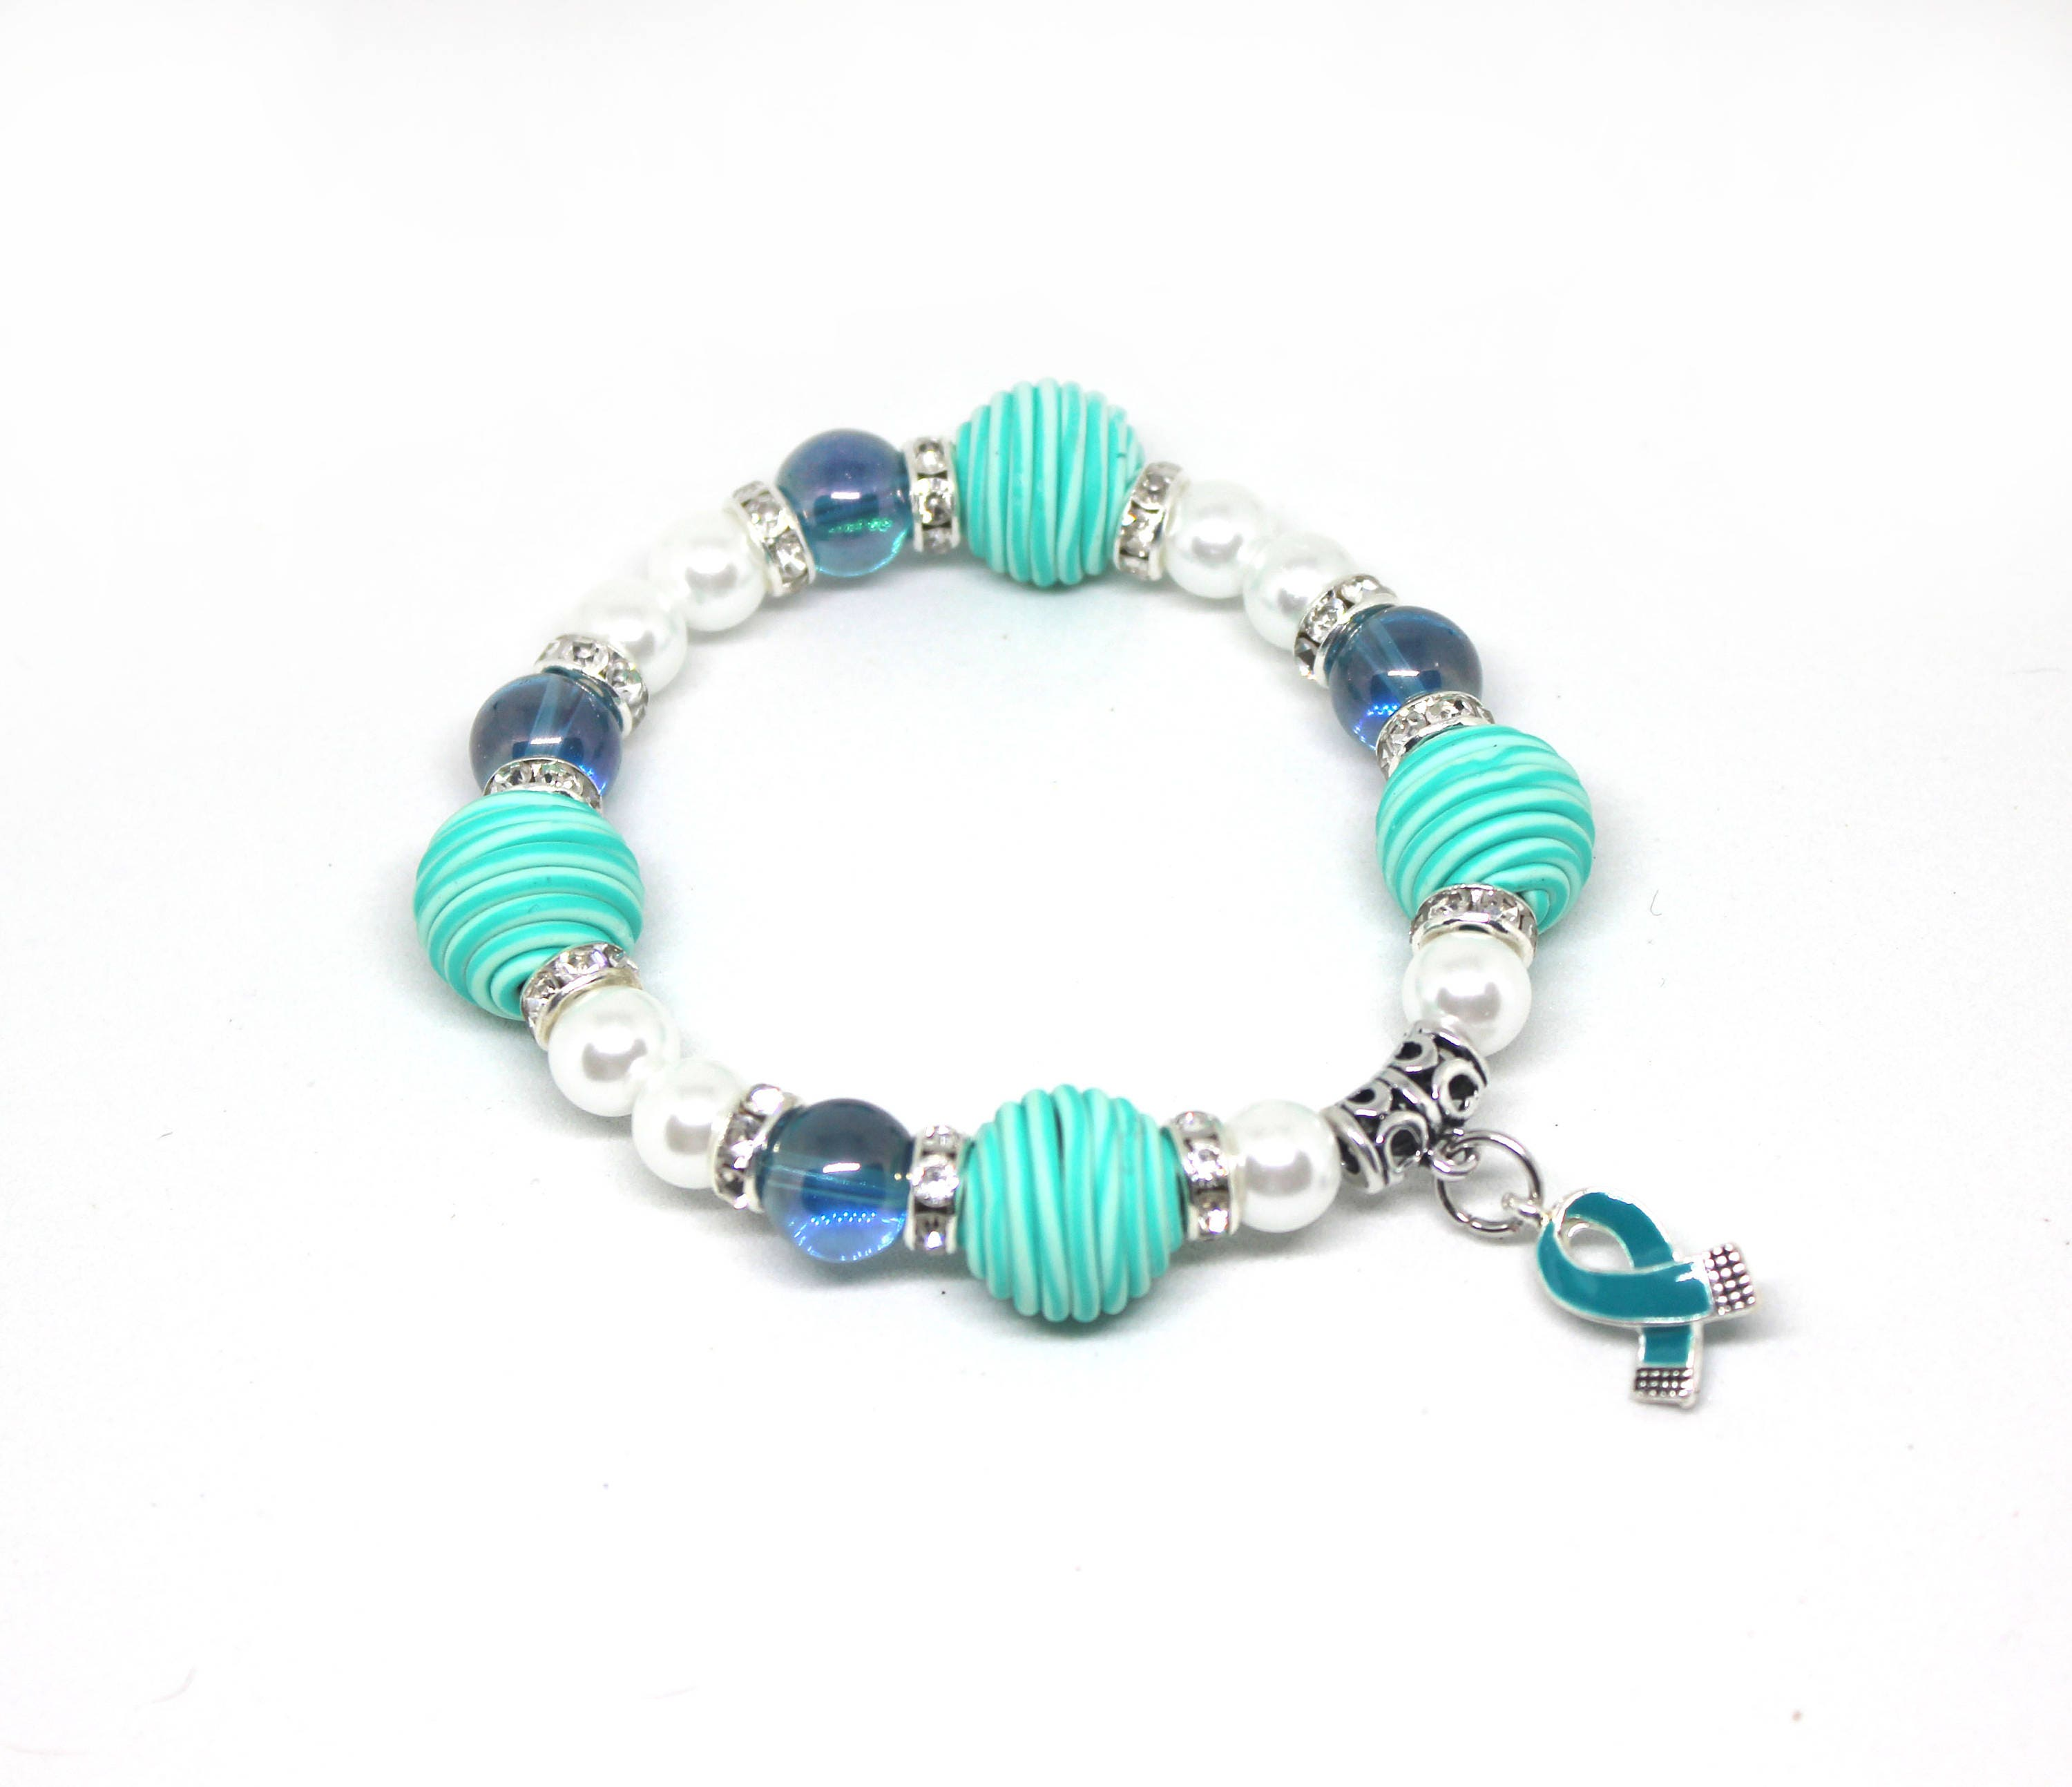 bracelet including batten ocd awareness disease silver teal pin agoraphobia disorder cancers and cervical types anxiety